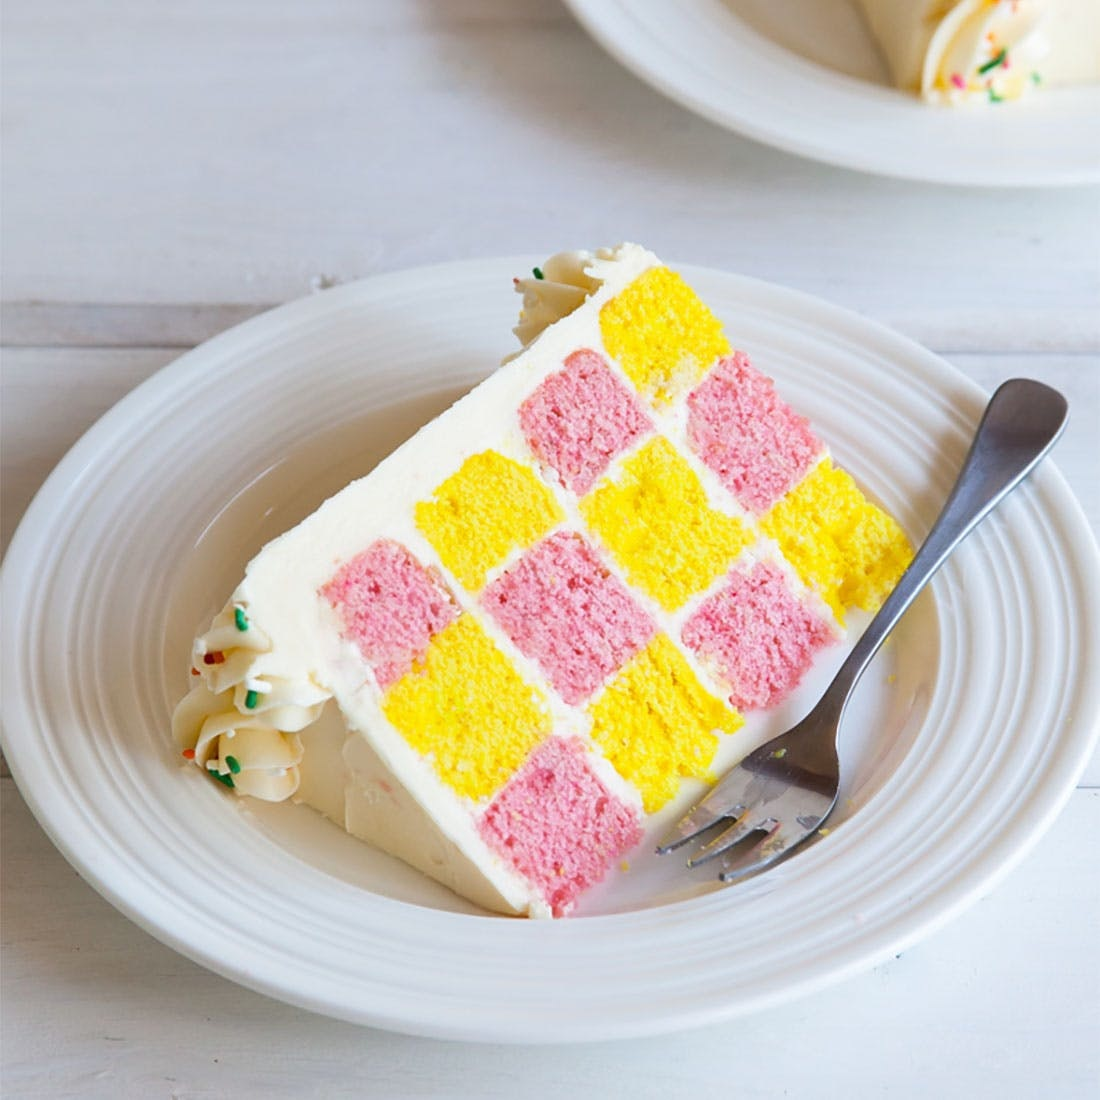 How To Make A Checkerboard Cake That Will Blow Your Guests Minds Brit Co